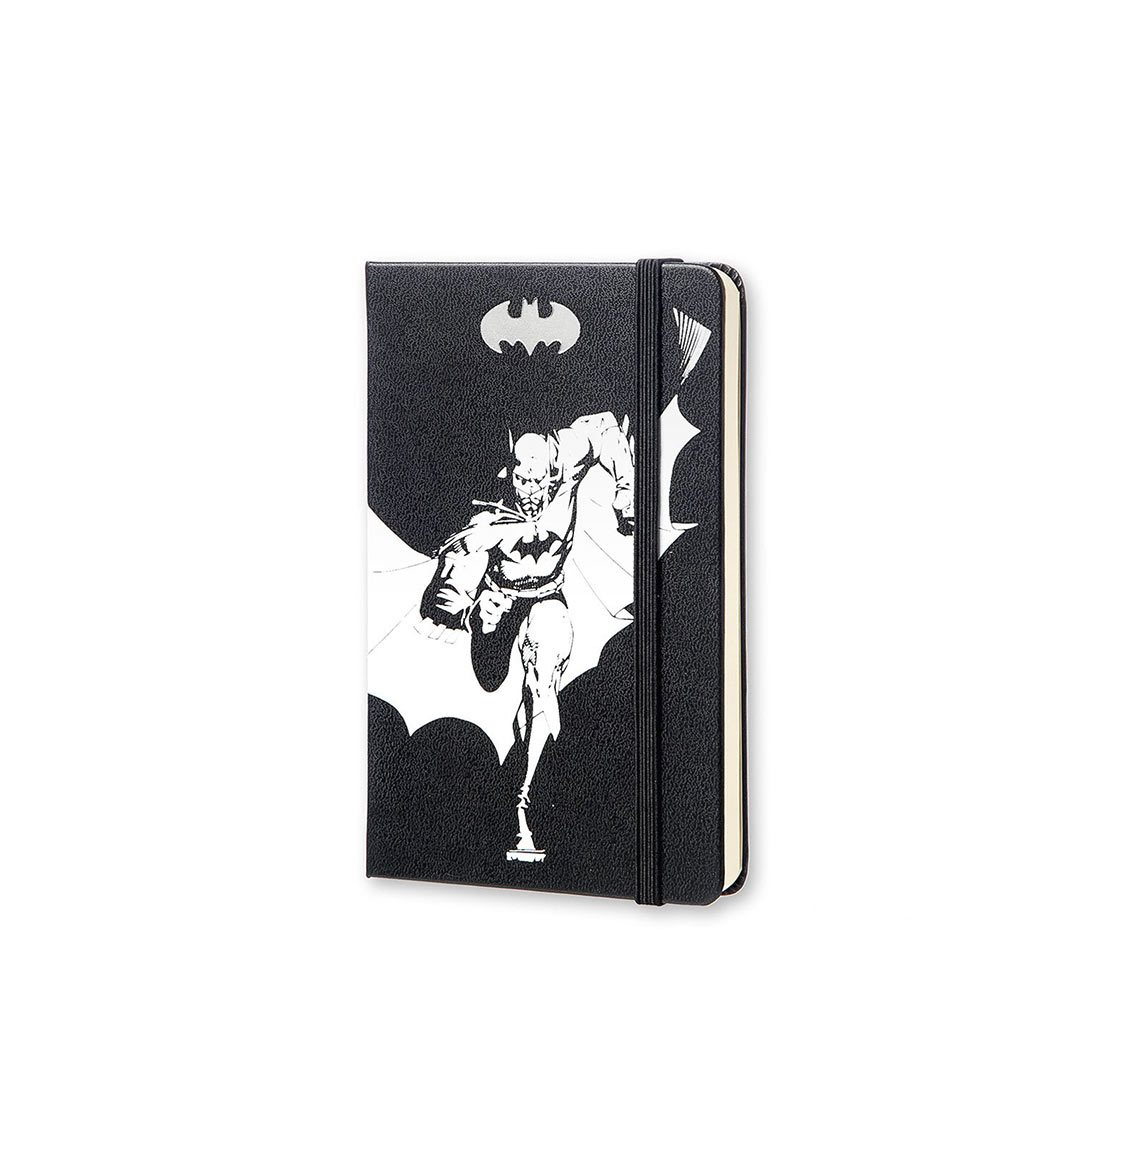 Moleskine Limited Edition Batman Pocket Plain Notebook